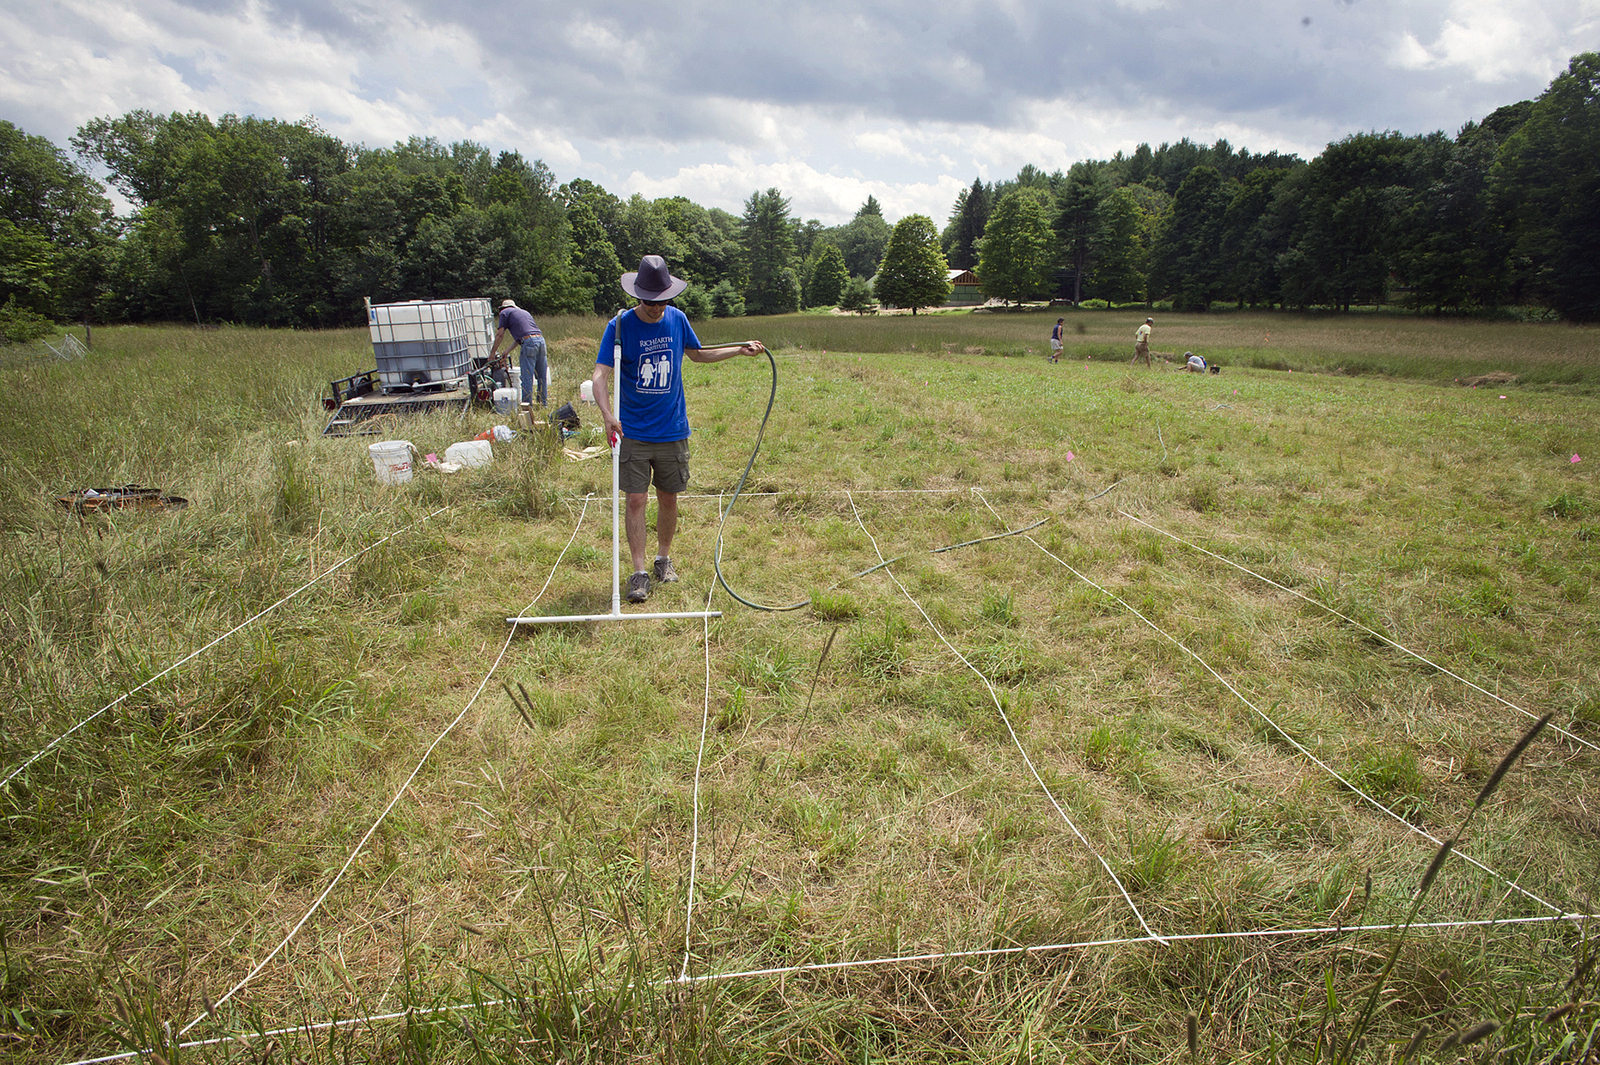 Abraham Noe-Hays, research director of the Rich Earth Institute in Vermont, applies urine to a five by five-meter test plot on a hay farm. Photo: Betty Jenewin/Courtesy of Rich Earth Institute